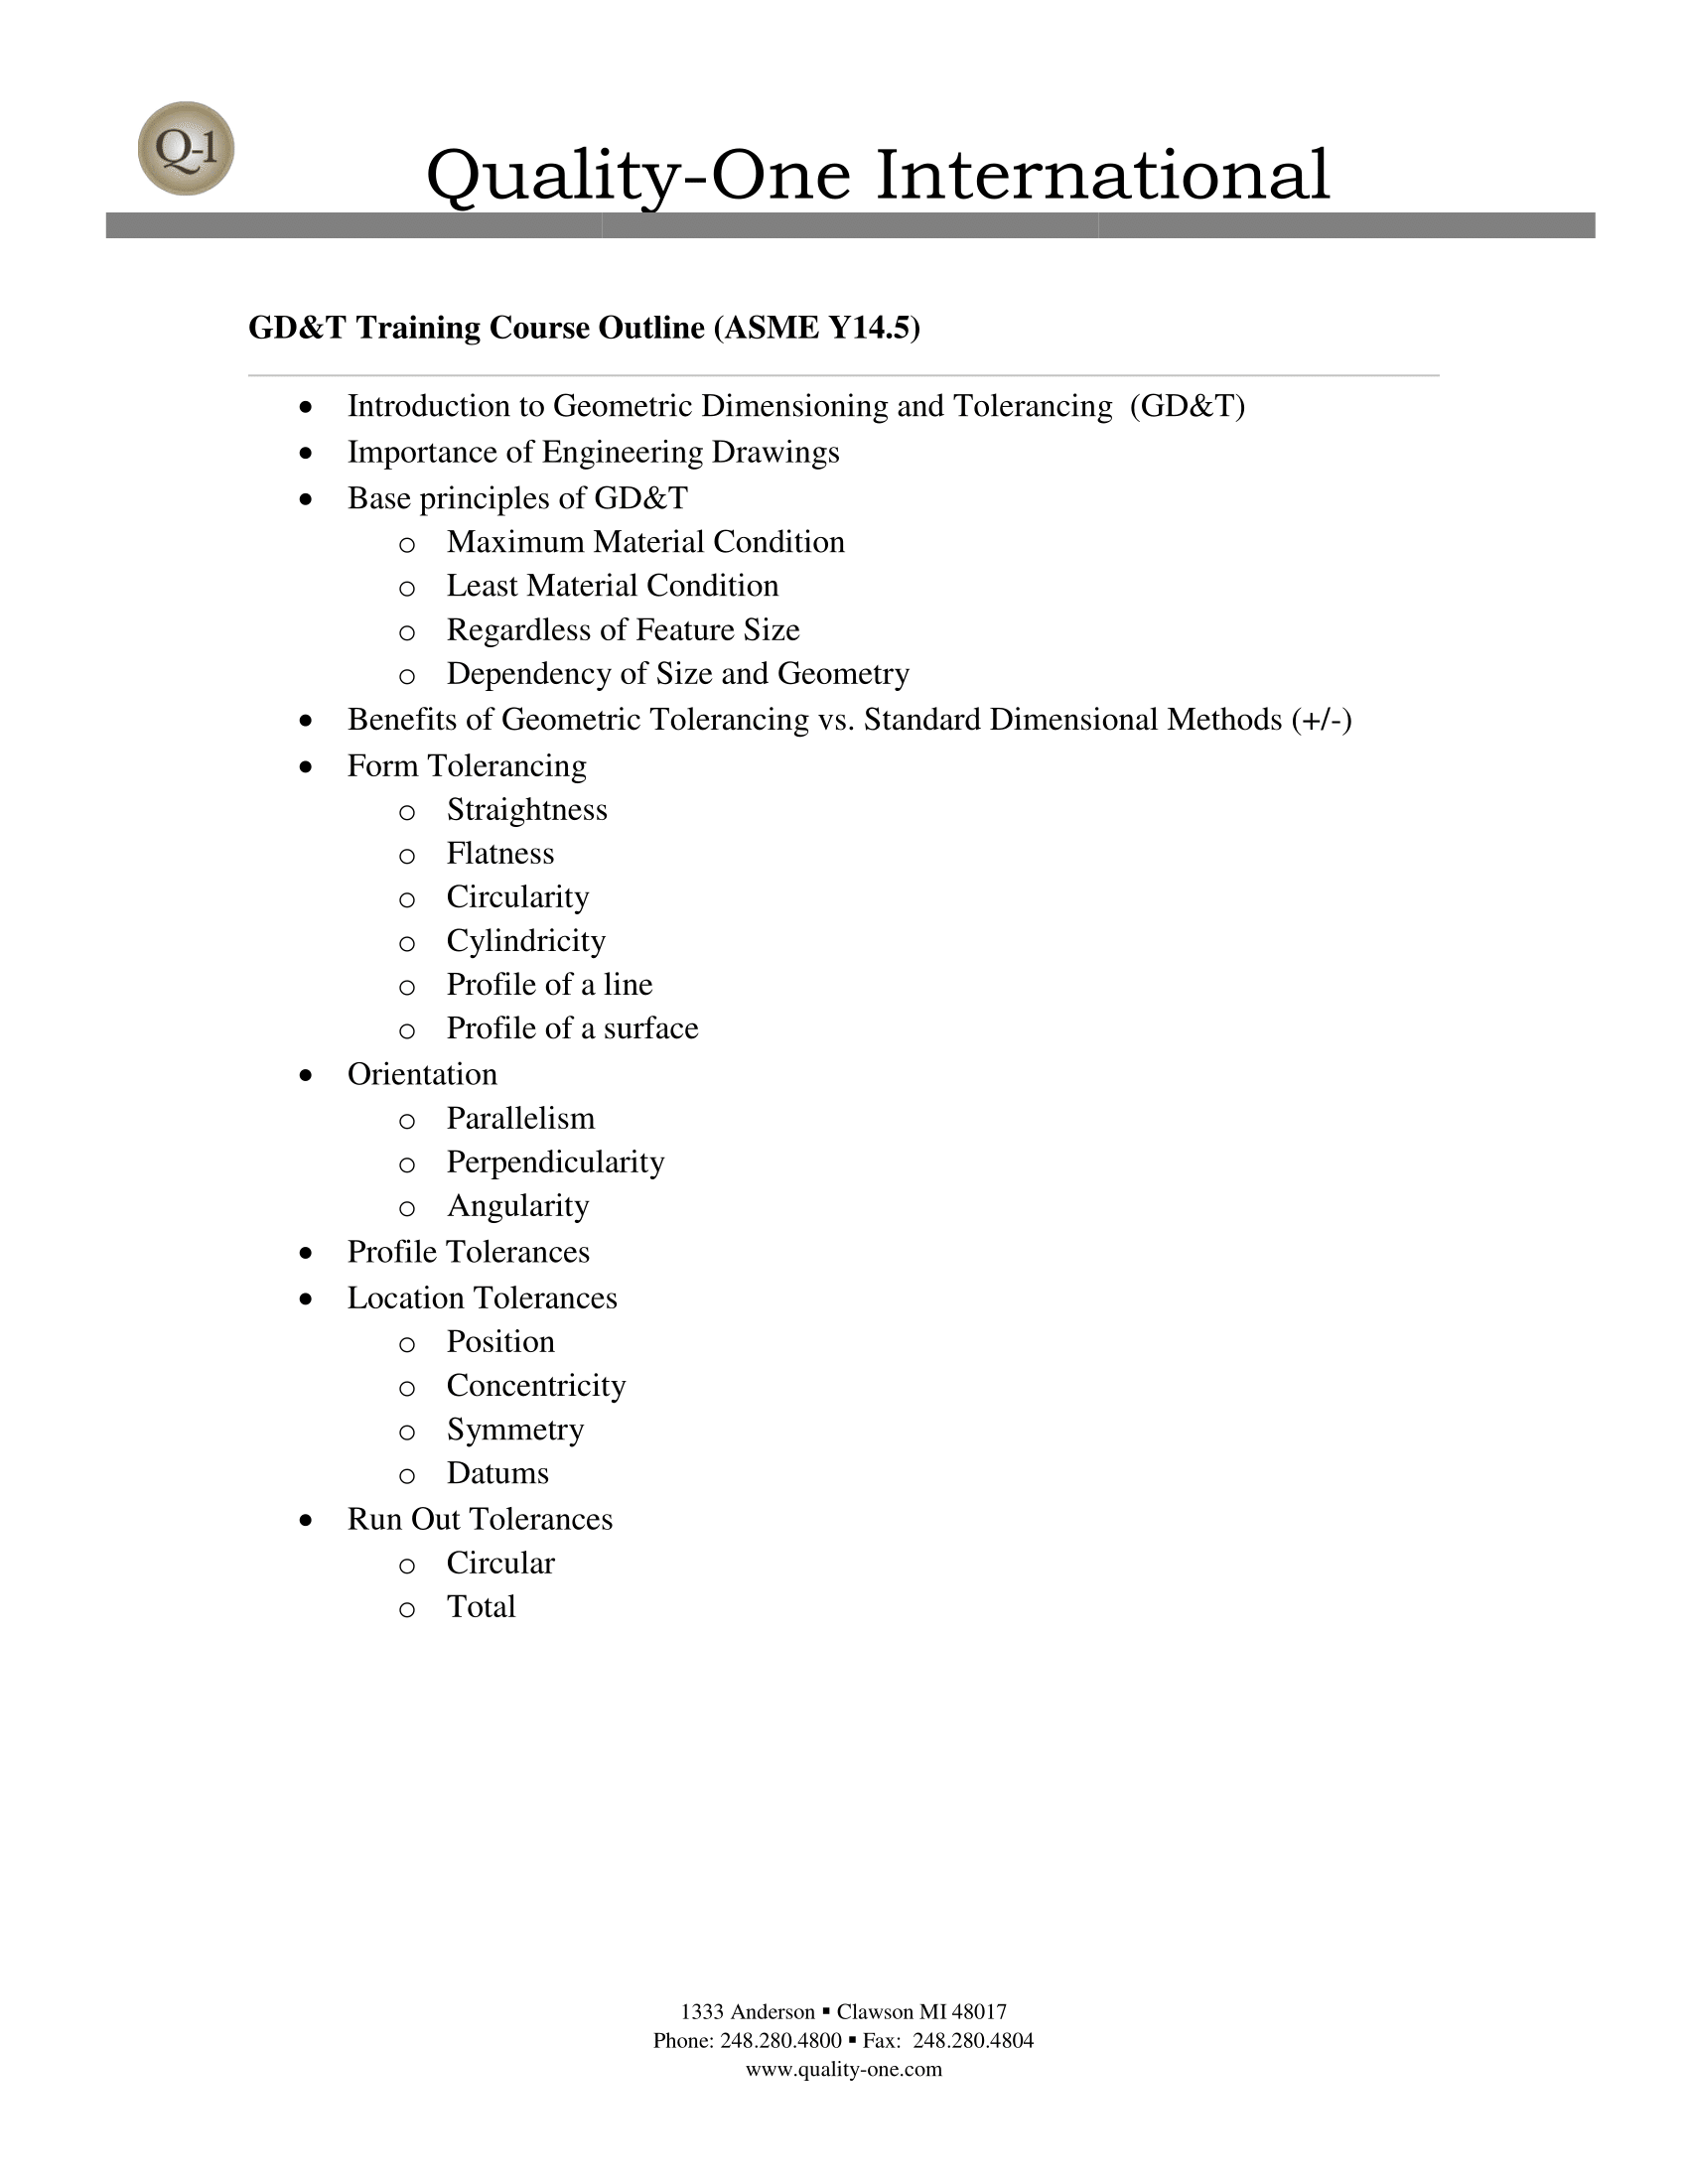 GD&T Training Course Outline